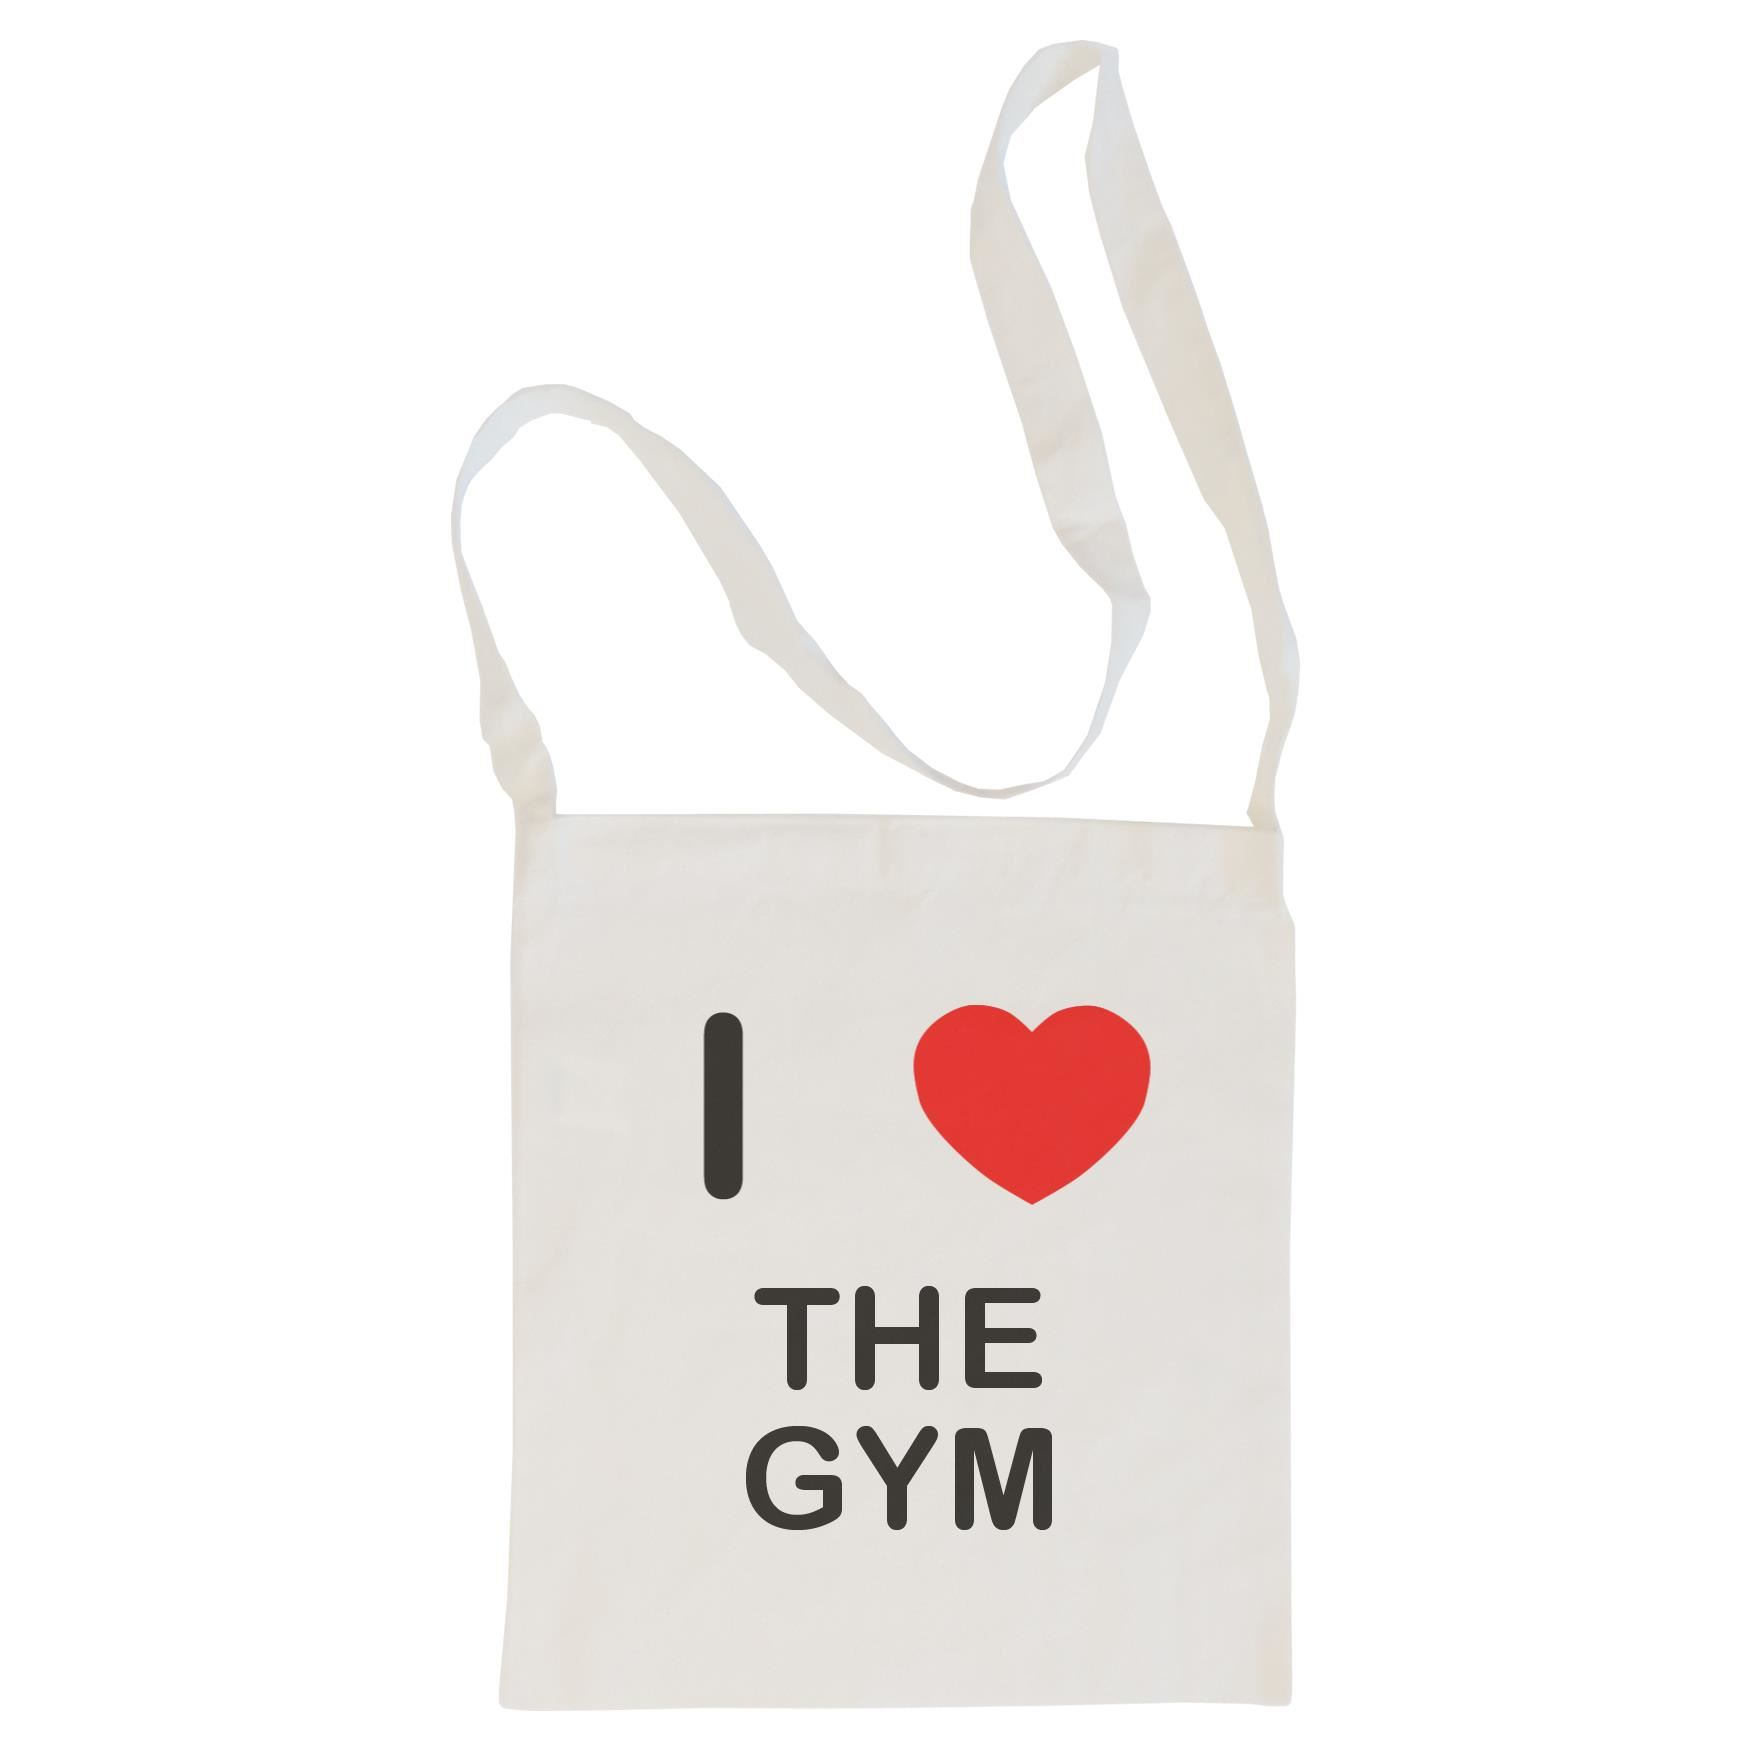 I Love The Gym - Cotton Bag | Size choice Tote, Shopper or Sling